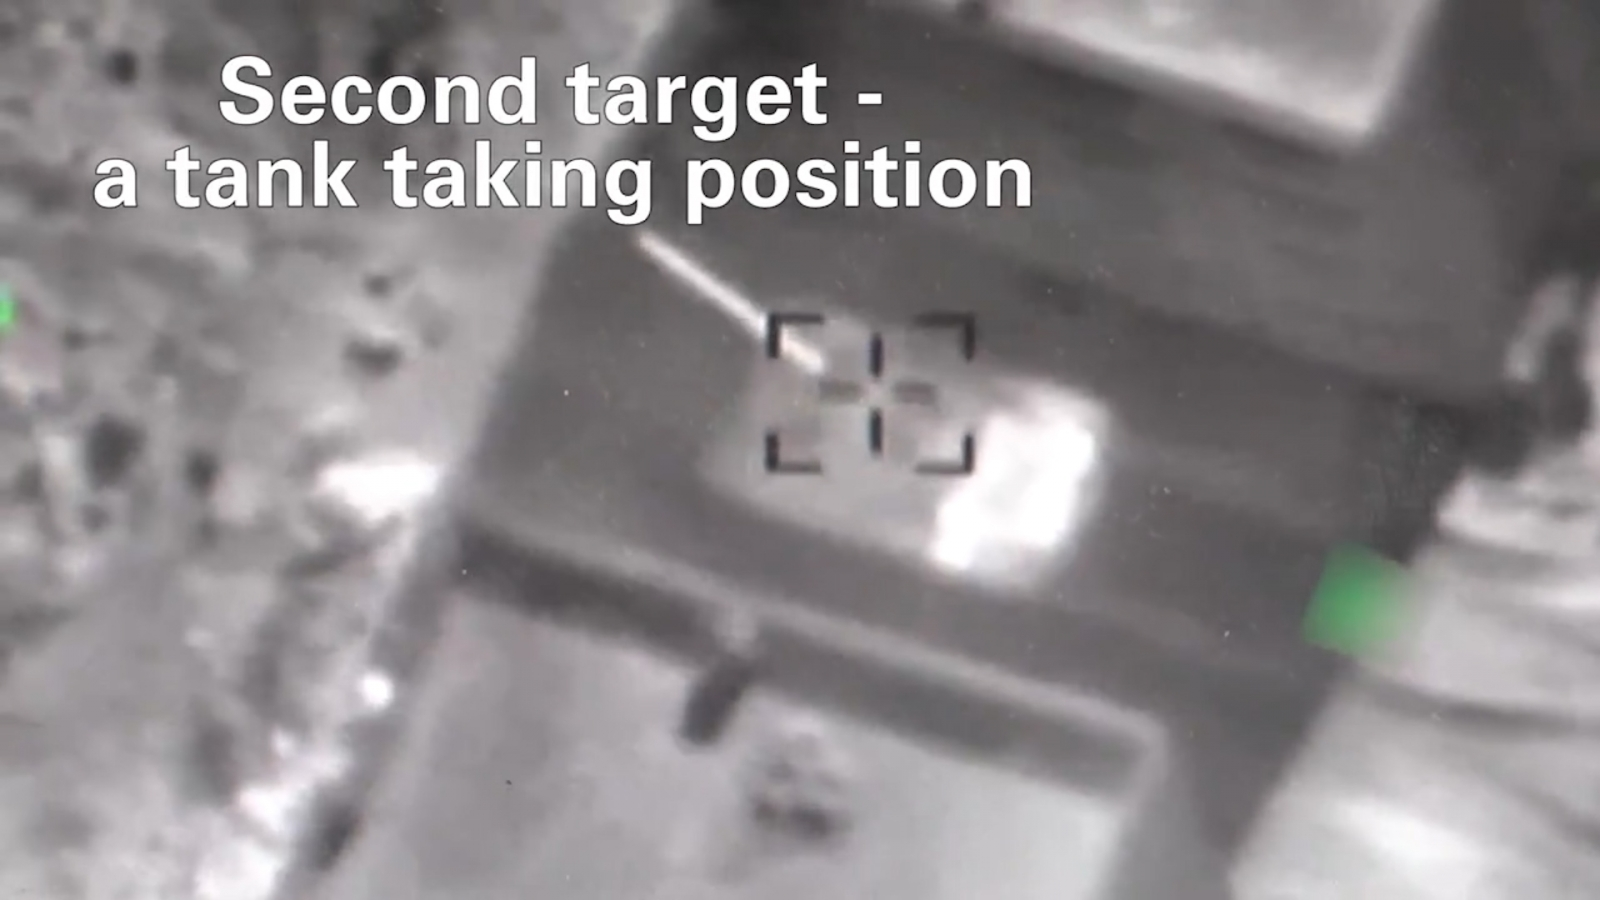 watch-israeli-air-force-blow-up-syrian-tanks